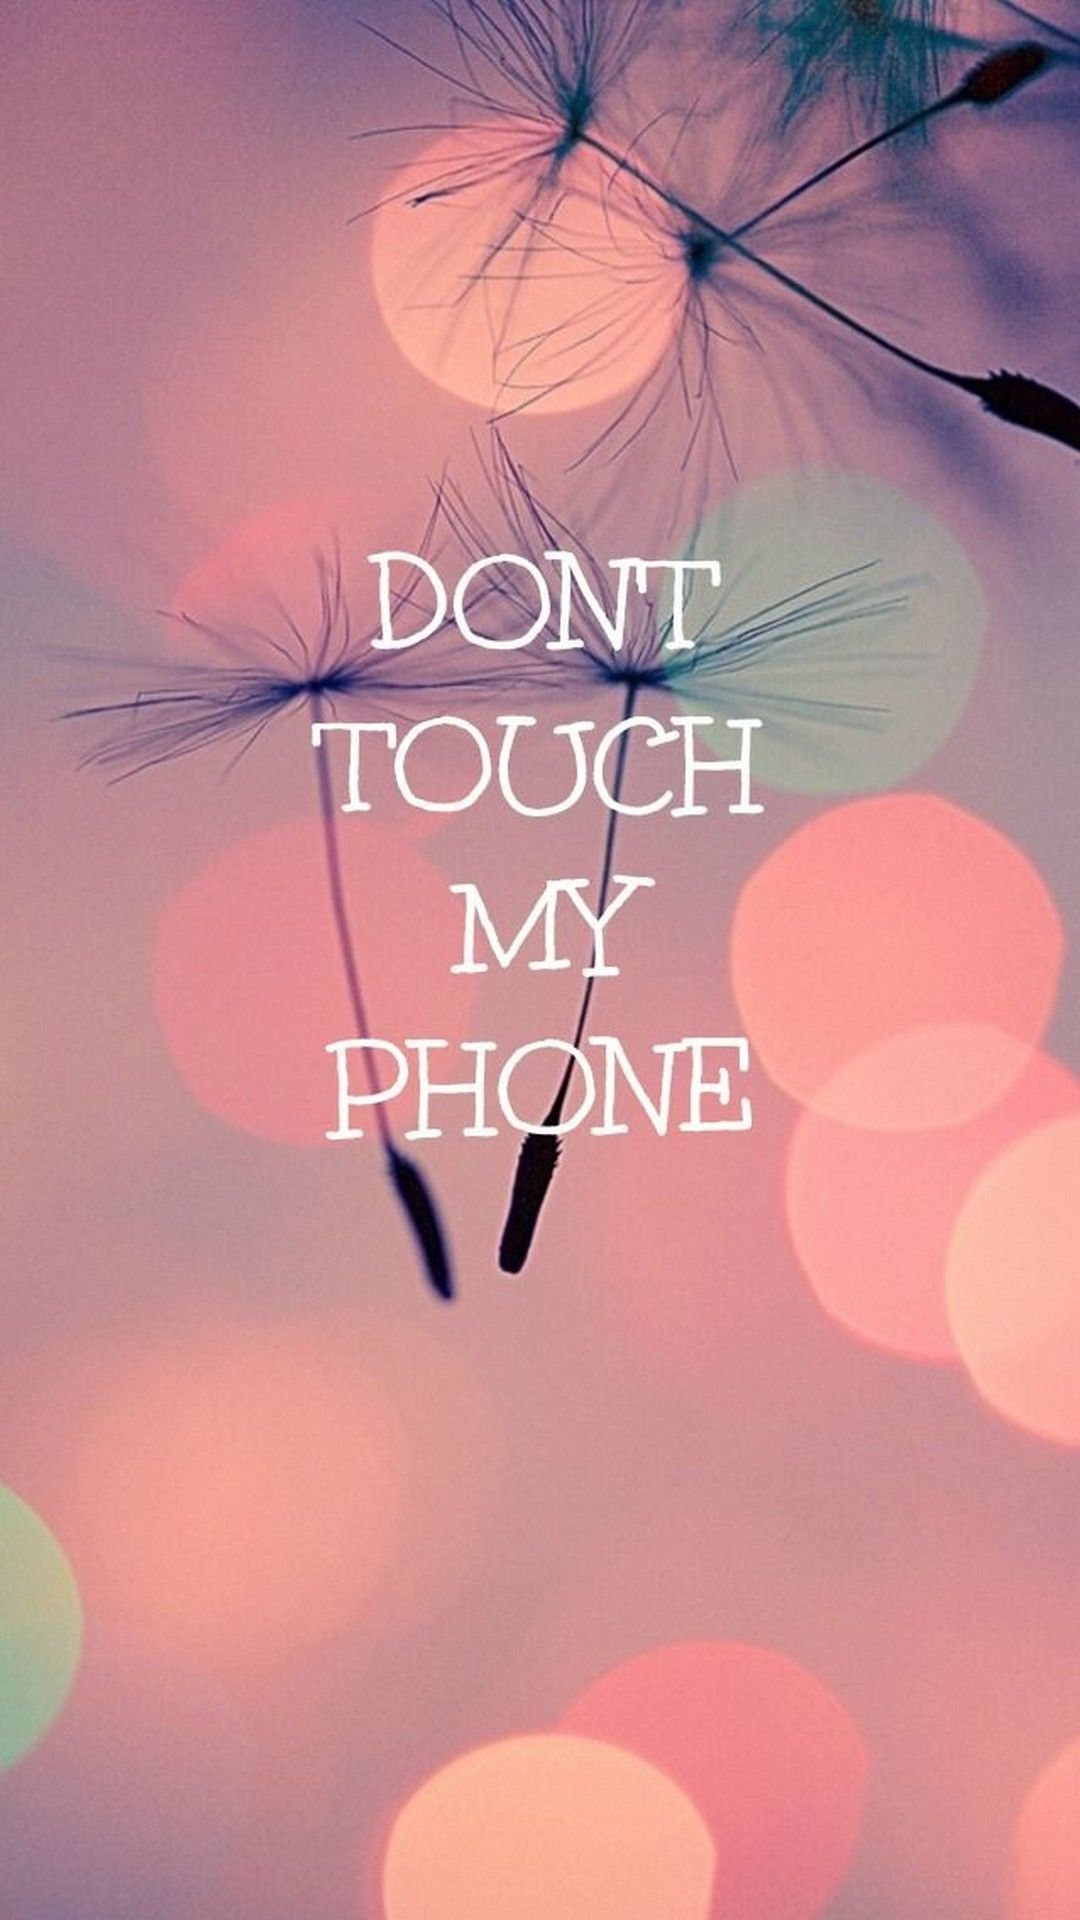 Cute Quotes Iphone 7 Wallpaper Hd Best Phone Wallpaper Iphone Wallpaper Girly Dont Touch My Phone Wallpapers Cute Wallpaper For Phone